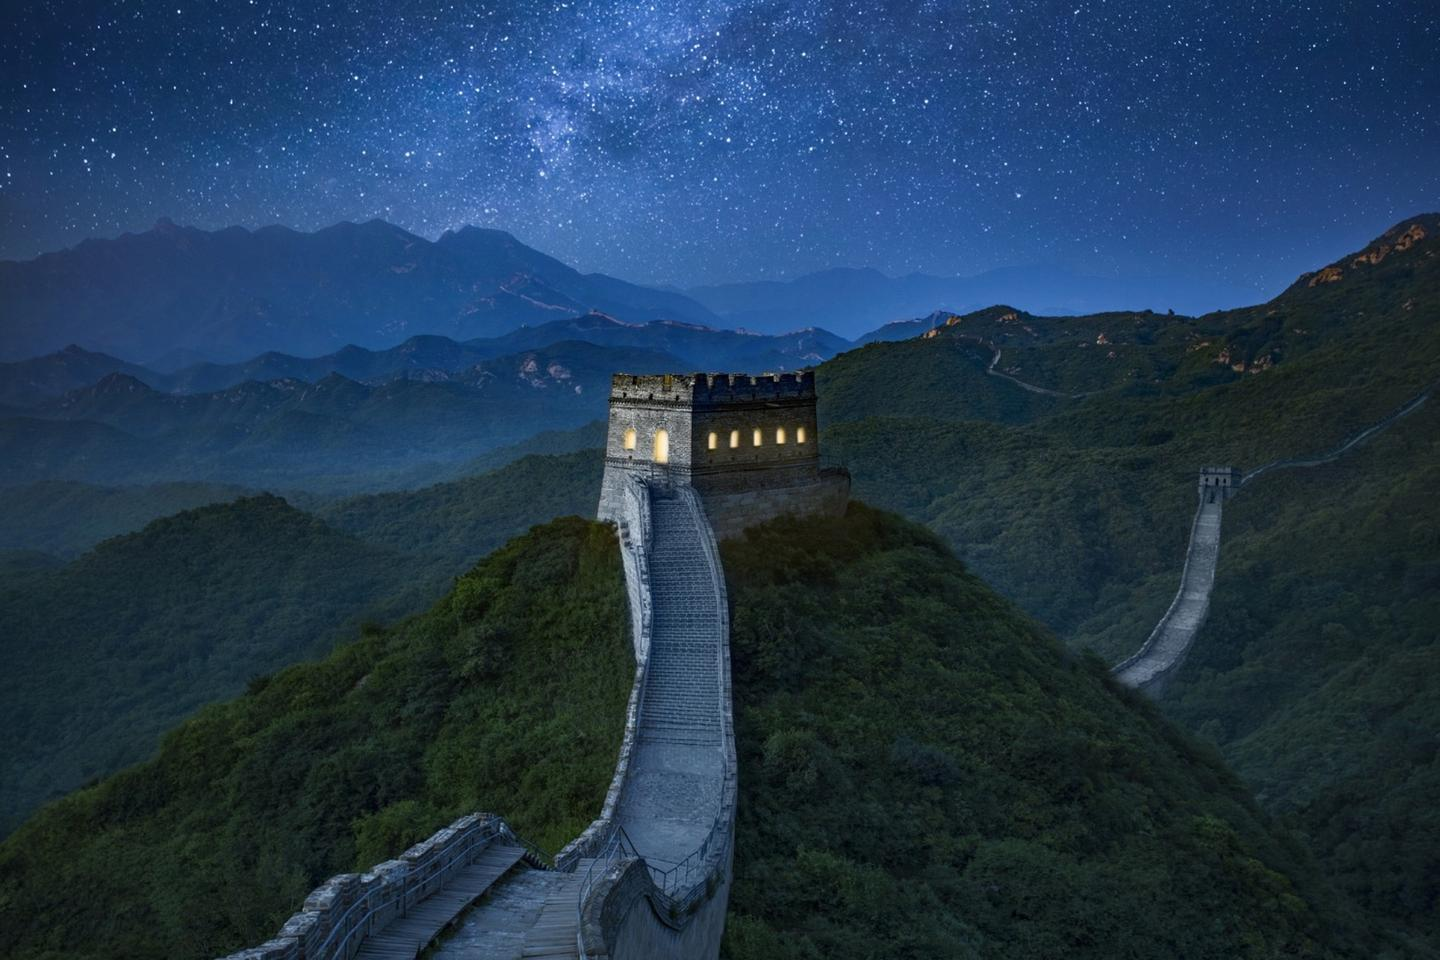 The competition to stay on the Great Wall of China is open until August 11